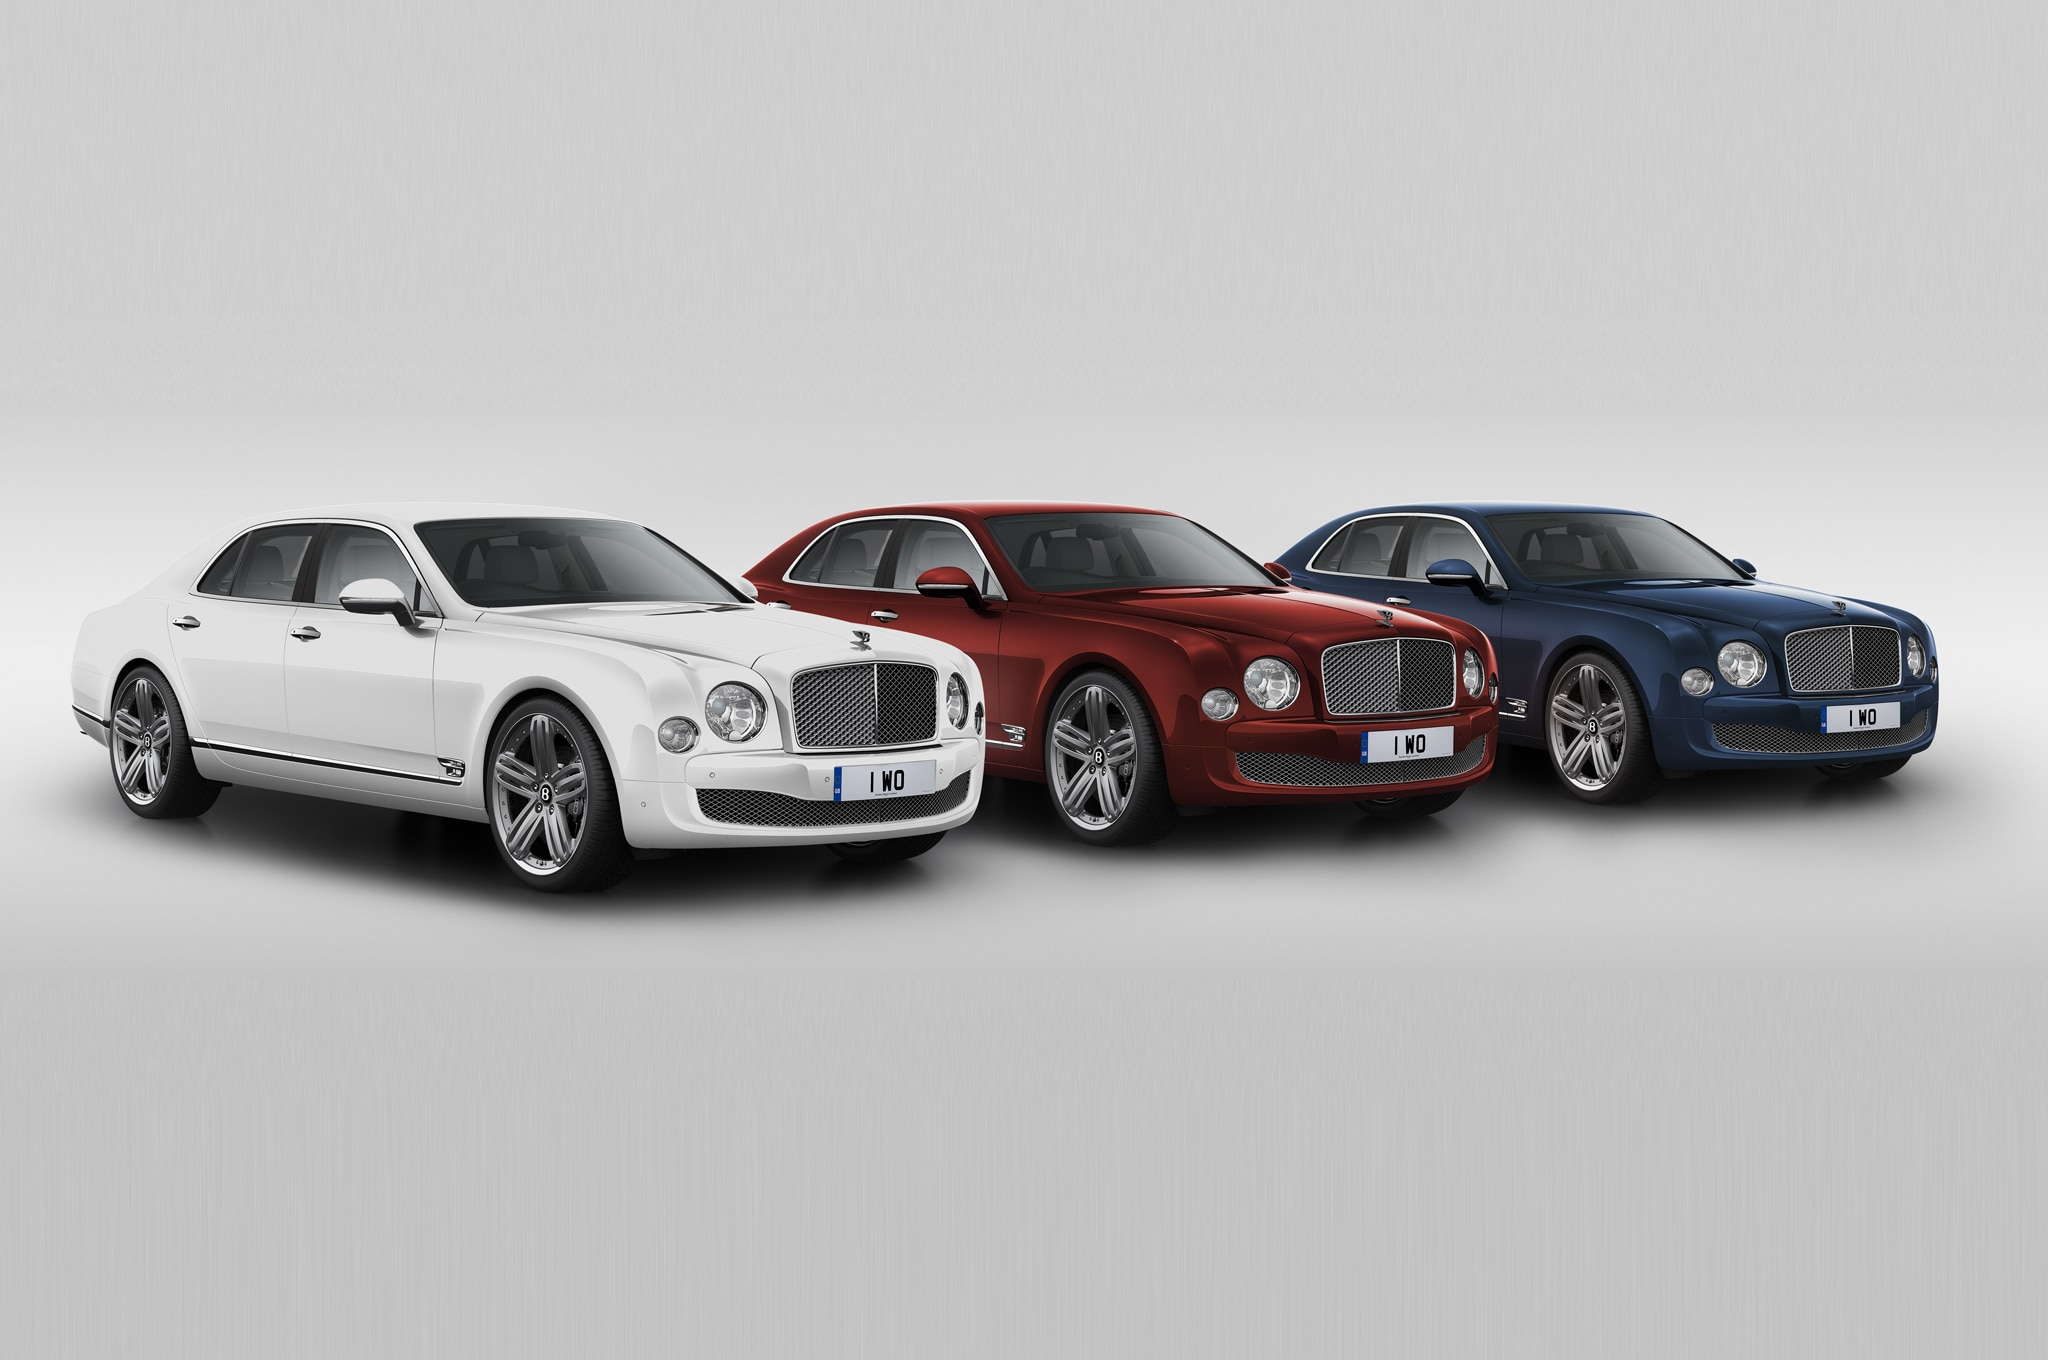 2014 Bentley Mulsanne 95 Trio Front Three Quarter